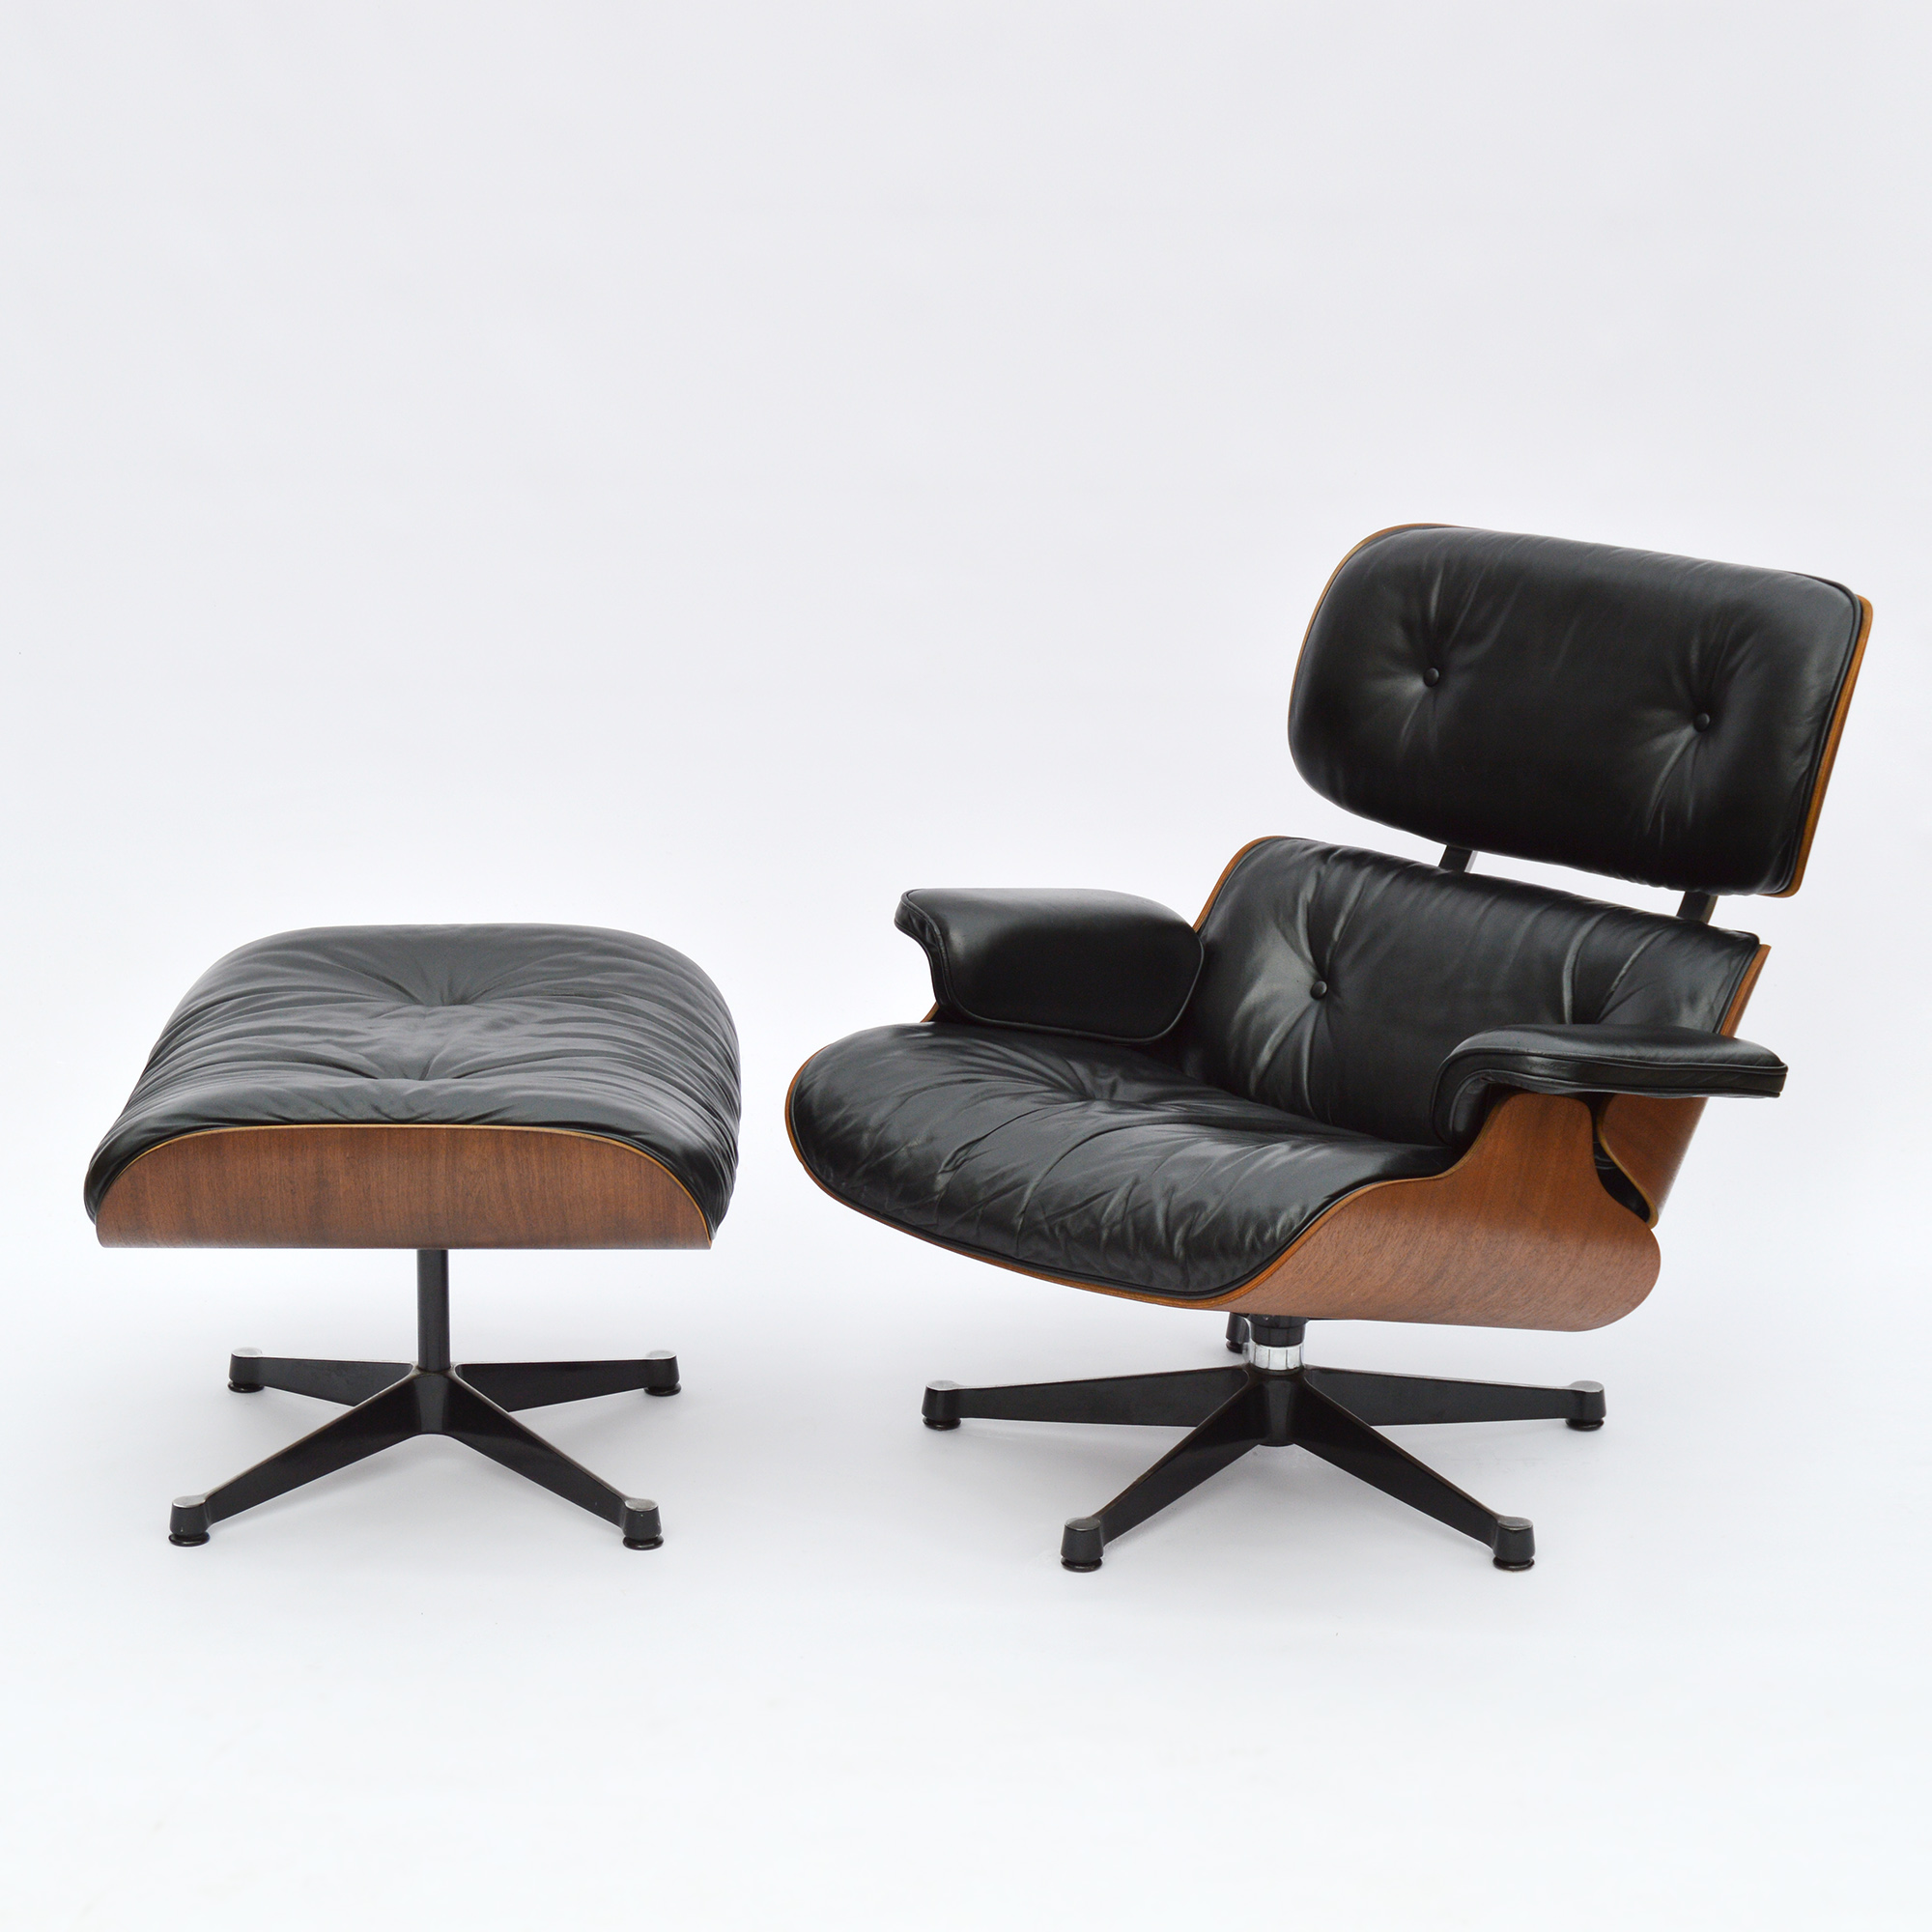 Eames Chair Gebraucht. Unique Furniture Style Chairs Lounge Chair Charles  Eames. Uncategorized Charles Eames Stoel Charles Eames Lounge. Eames  Rocking Chair ...